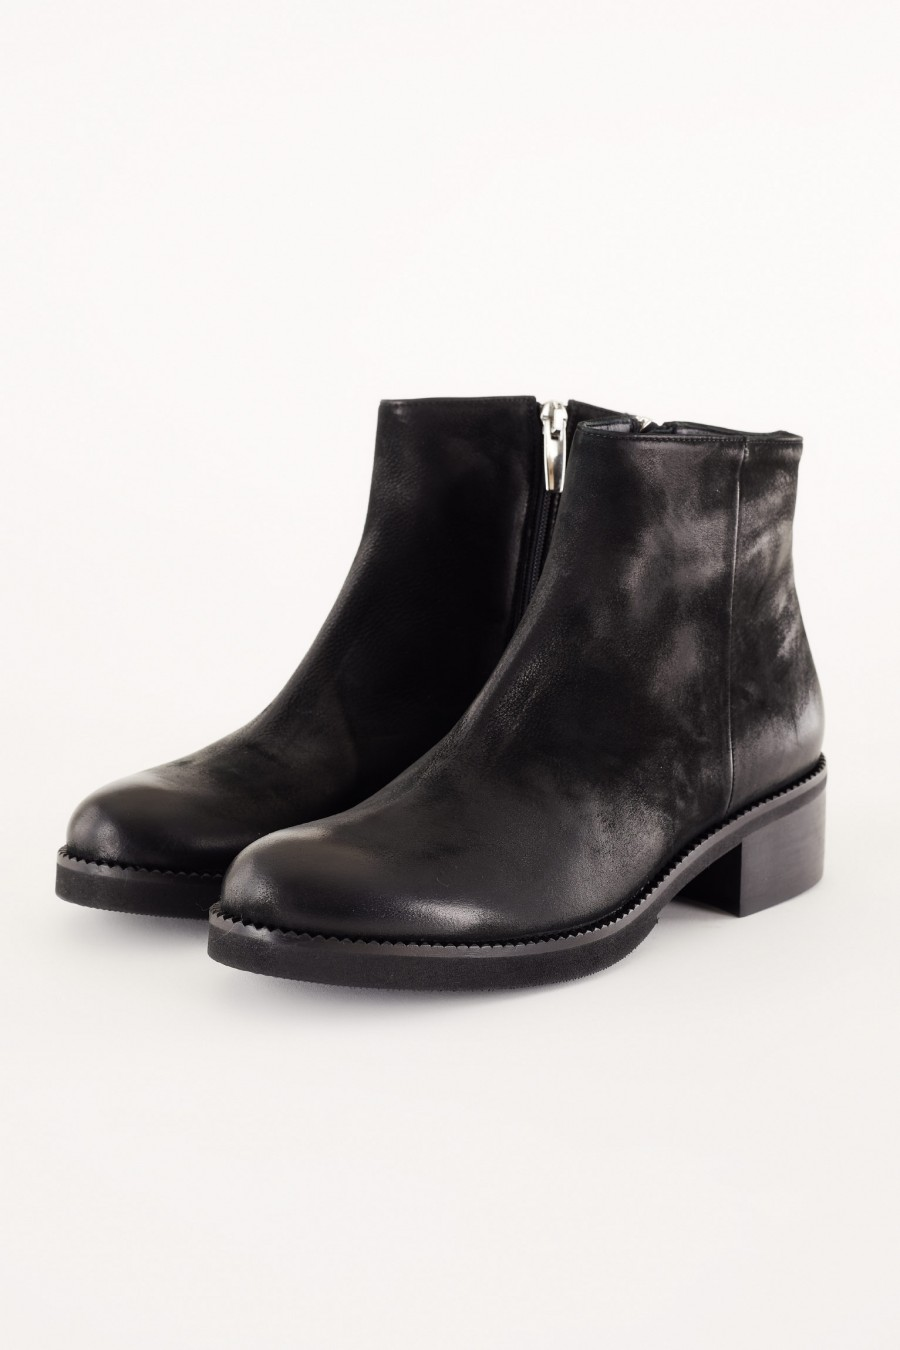 sporty anke boots with zip